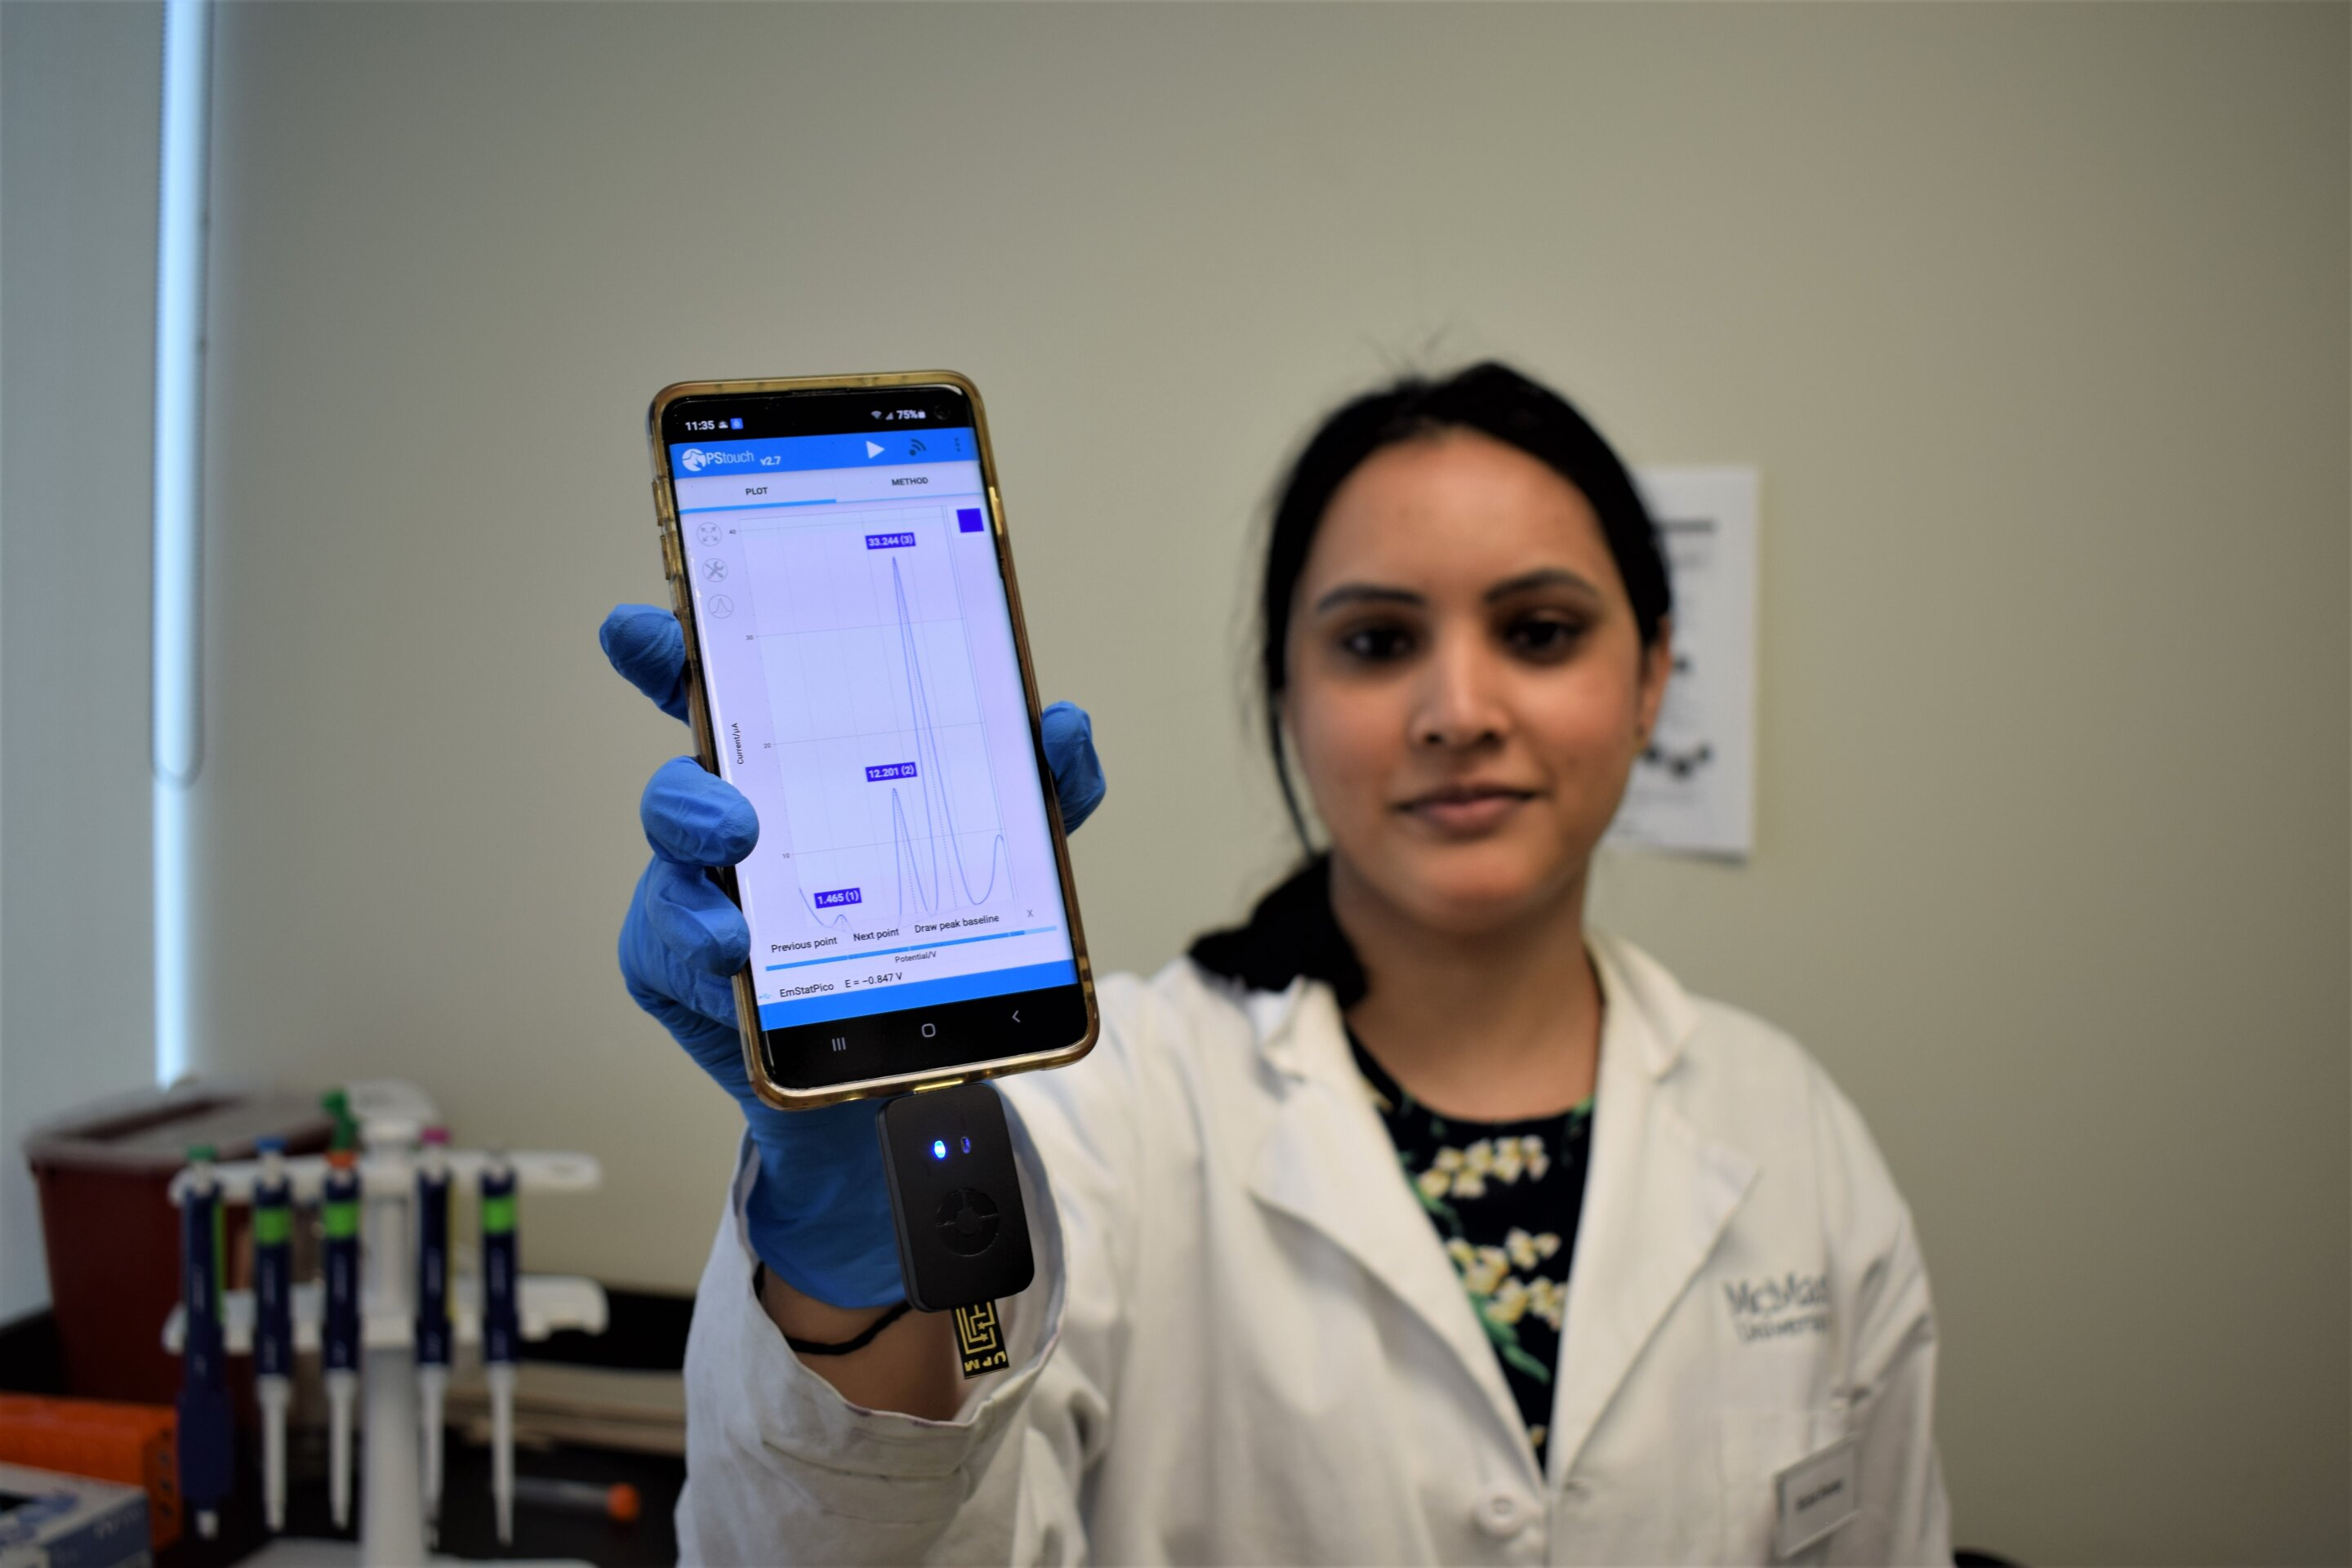 No lab required: New technology can diagnose infections in minutes - Phys.org